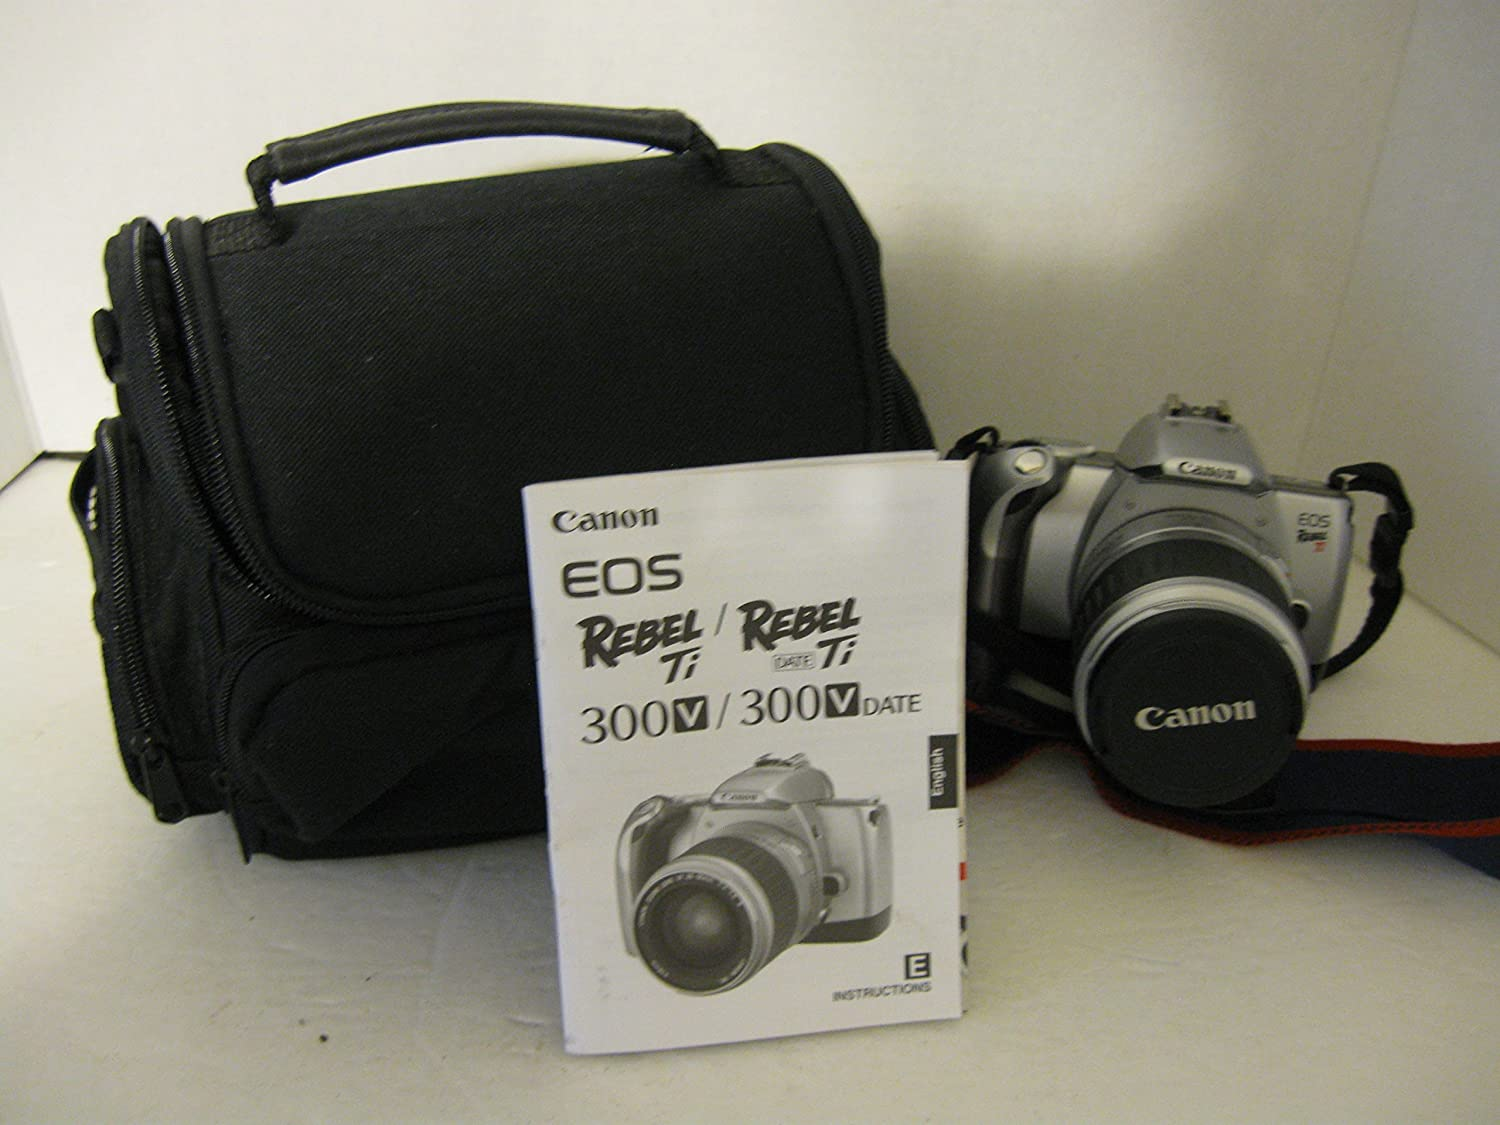 Amazon.com : CANNON EOS REBEL/TI 300V, 28-90 MM ZOOM LENS, WITH CARRYING  CASE : Camera & Photo